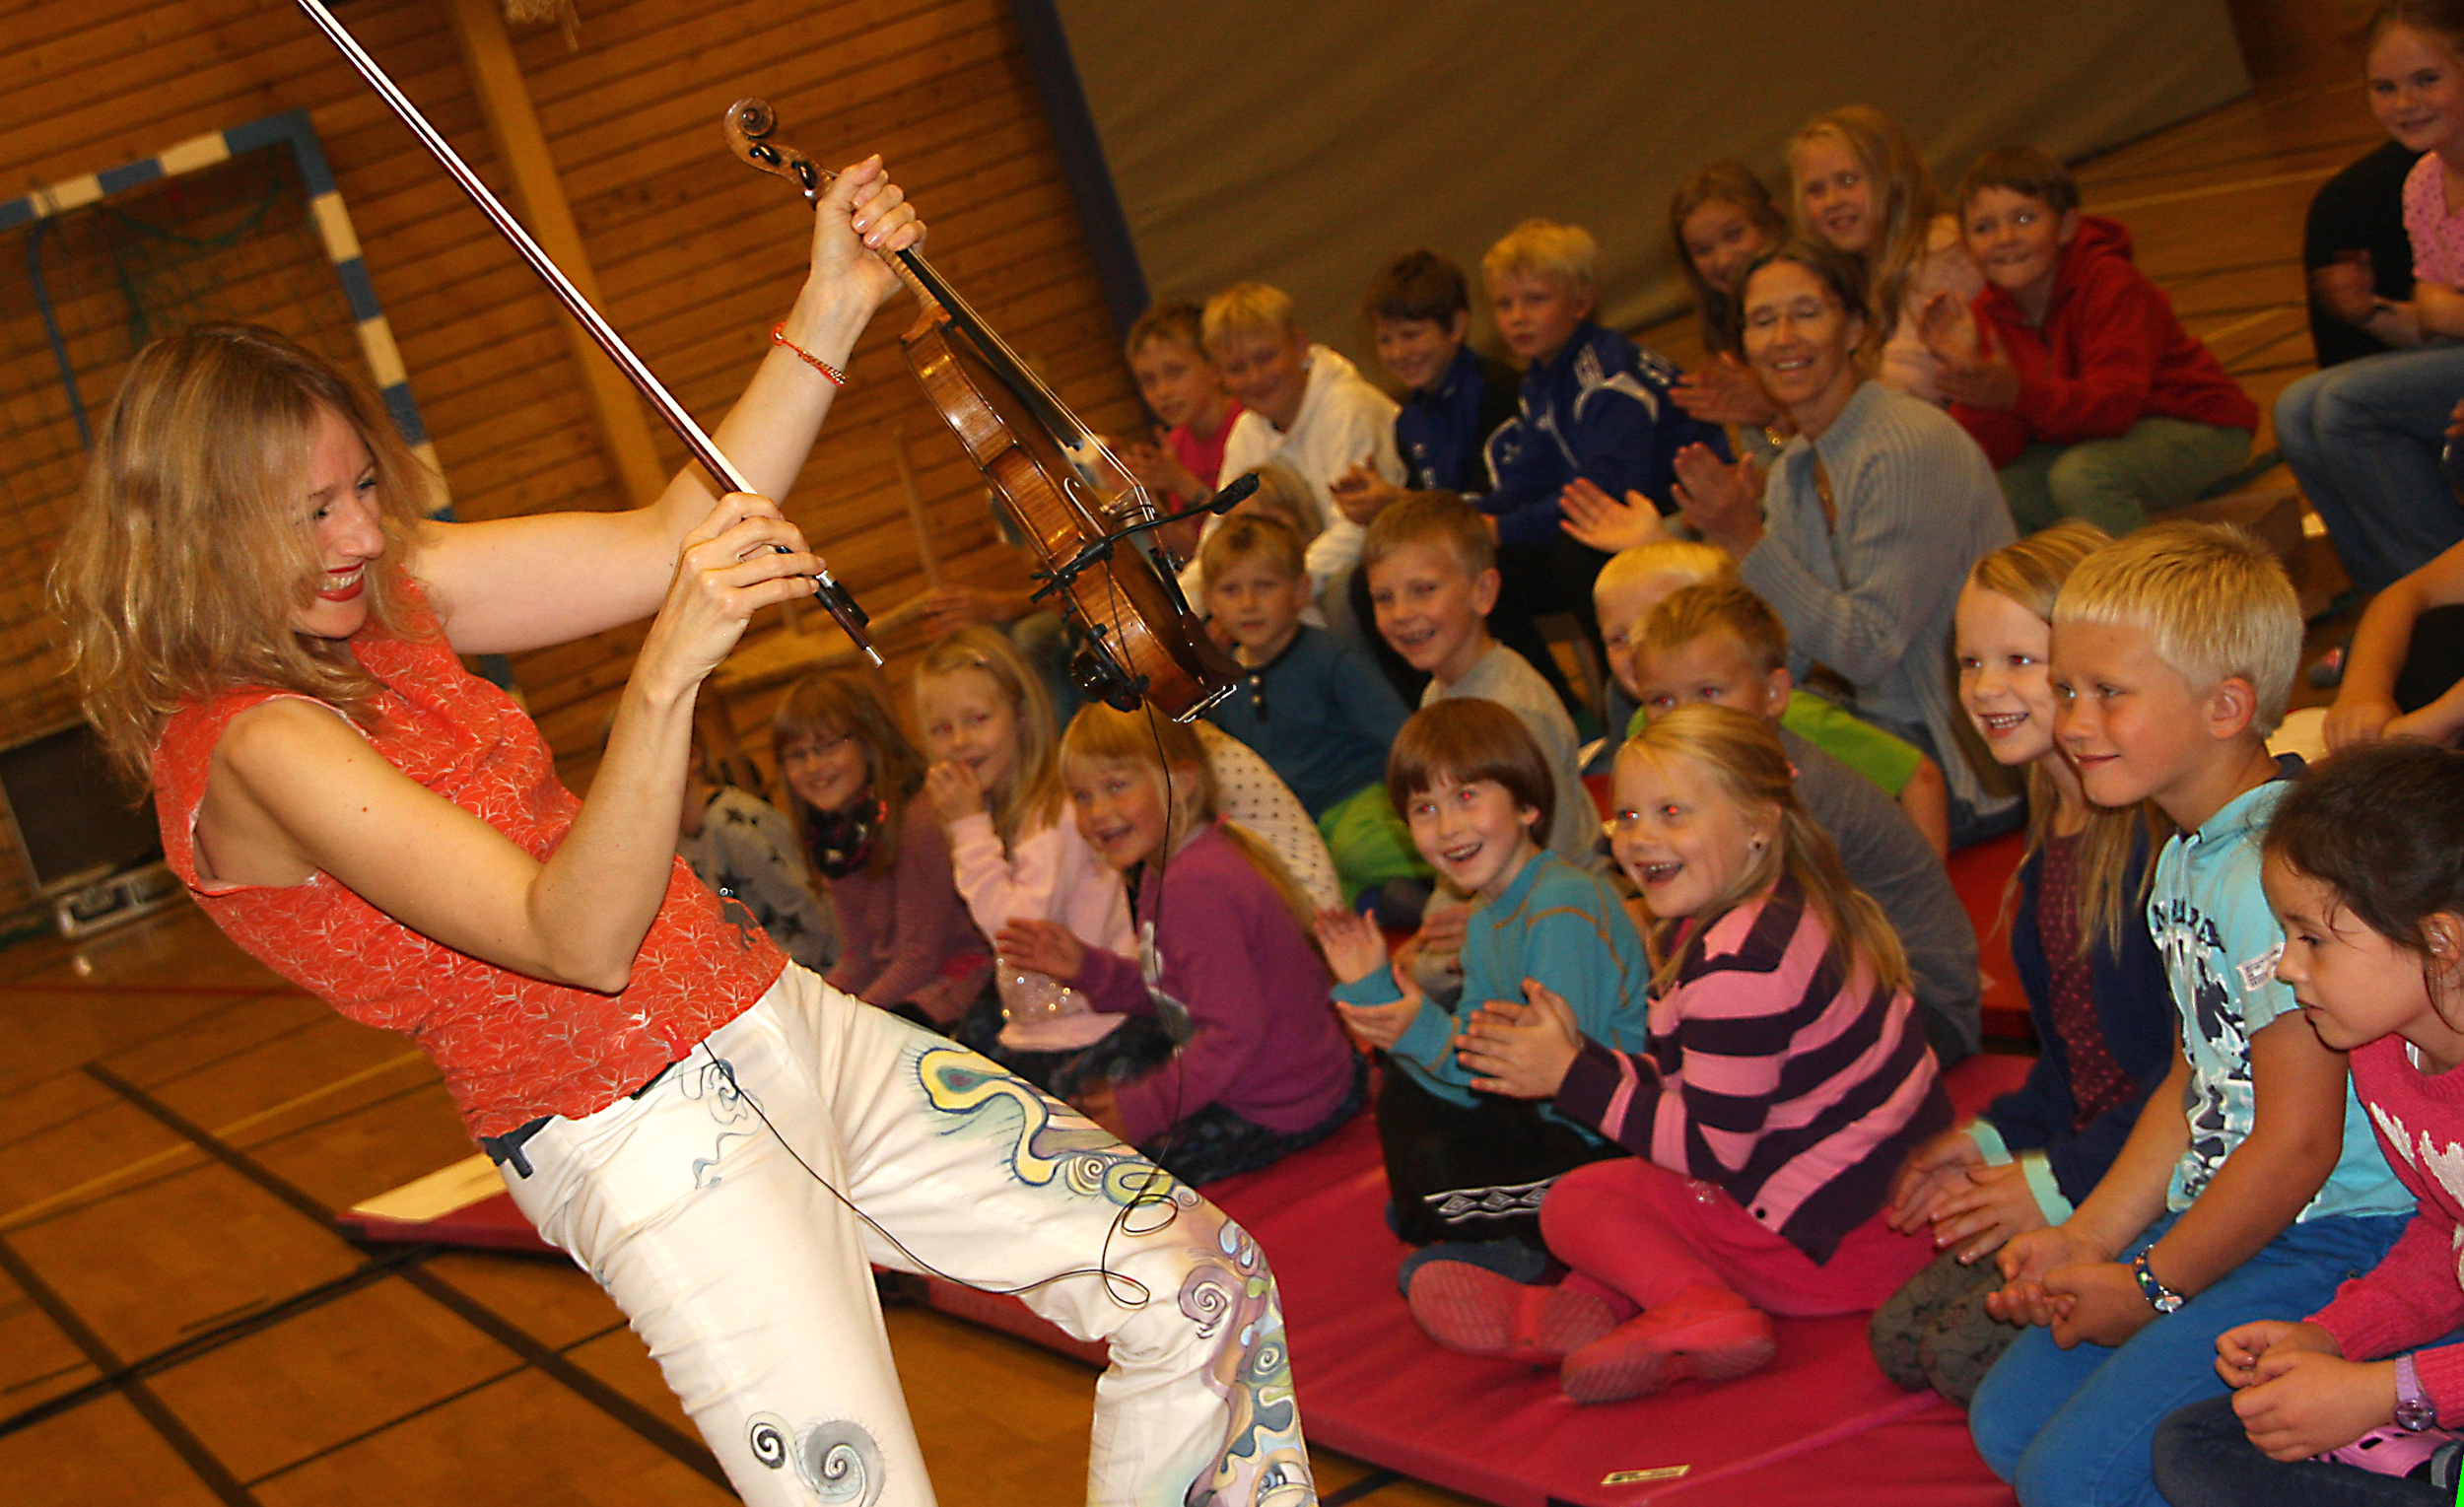 Adorable kids in Norway - and I am wearing the genius Jeorjia Shea pants, who will also be at the Rotary Horse Show